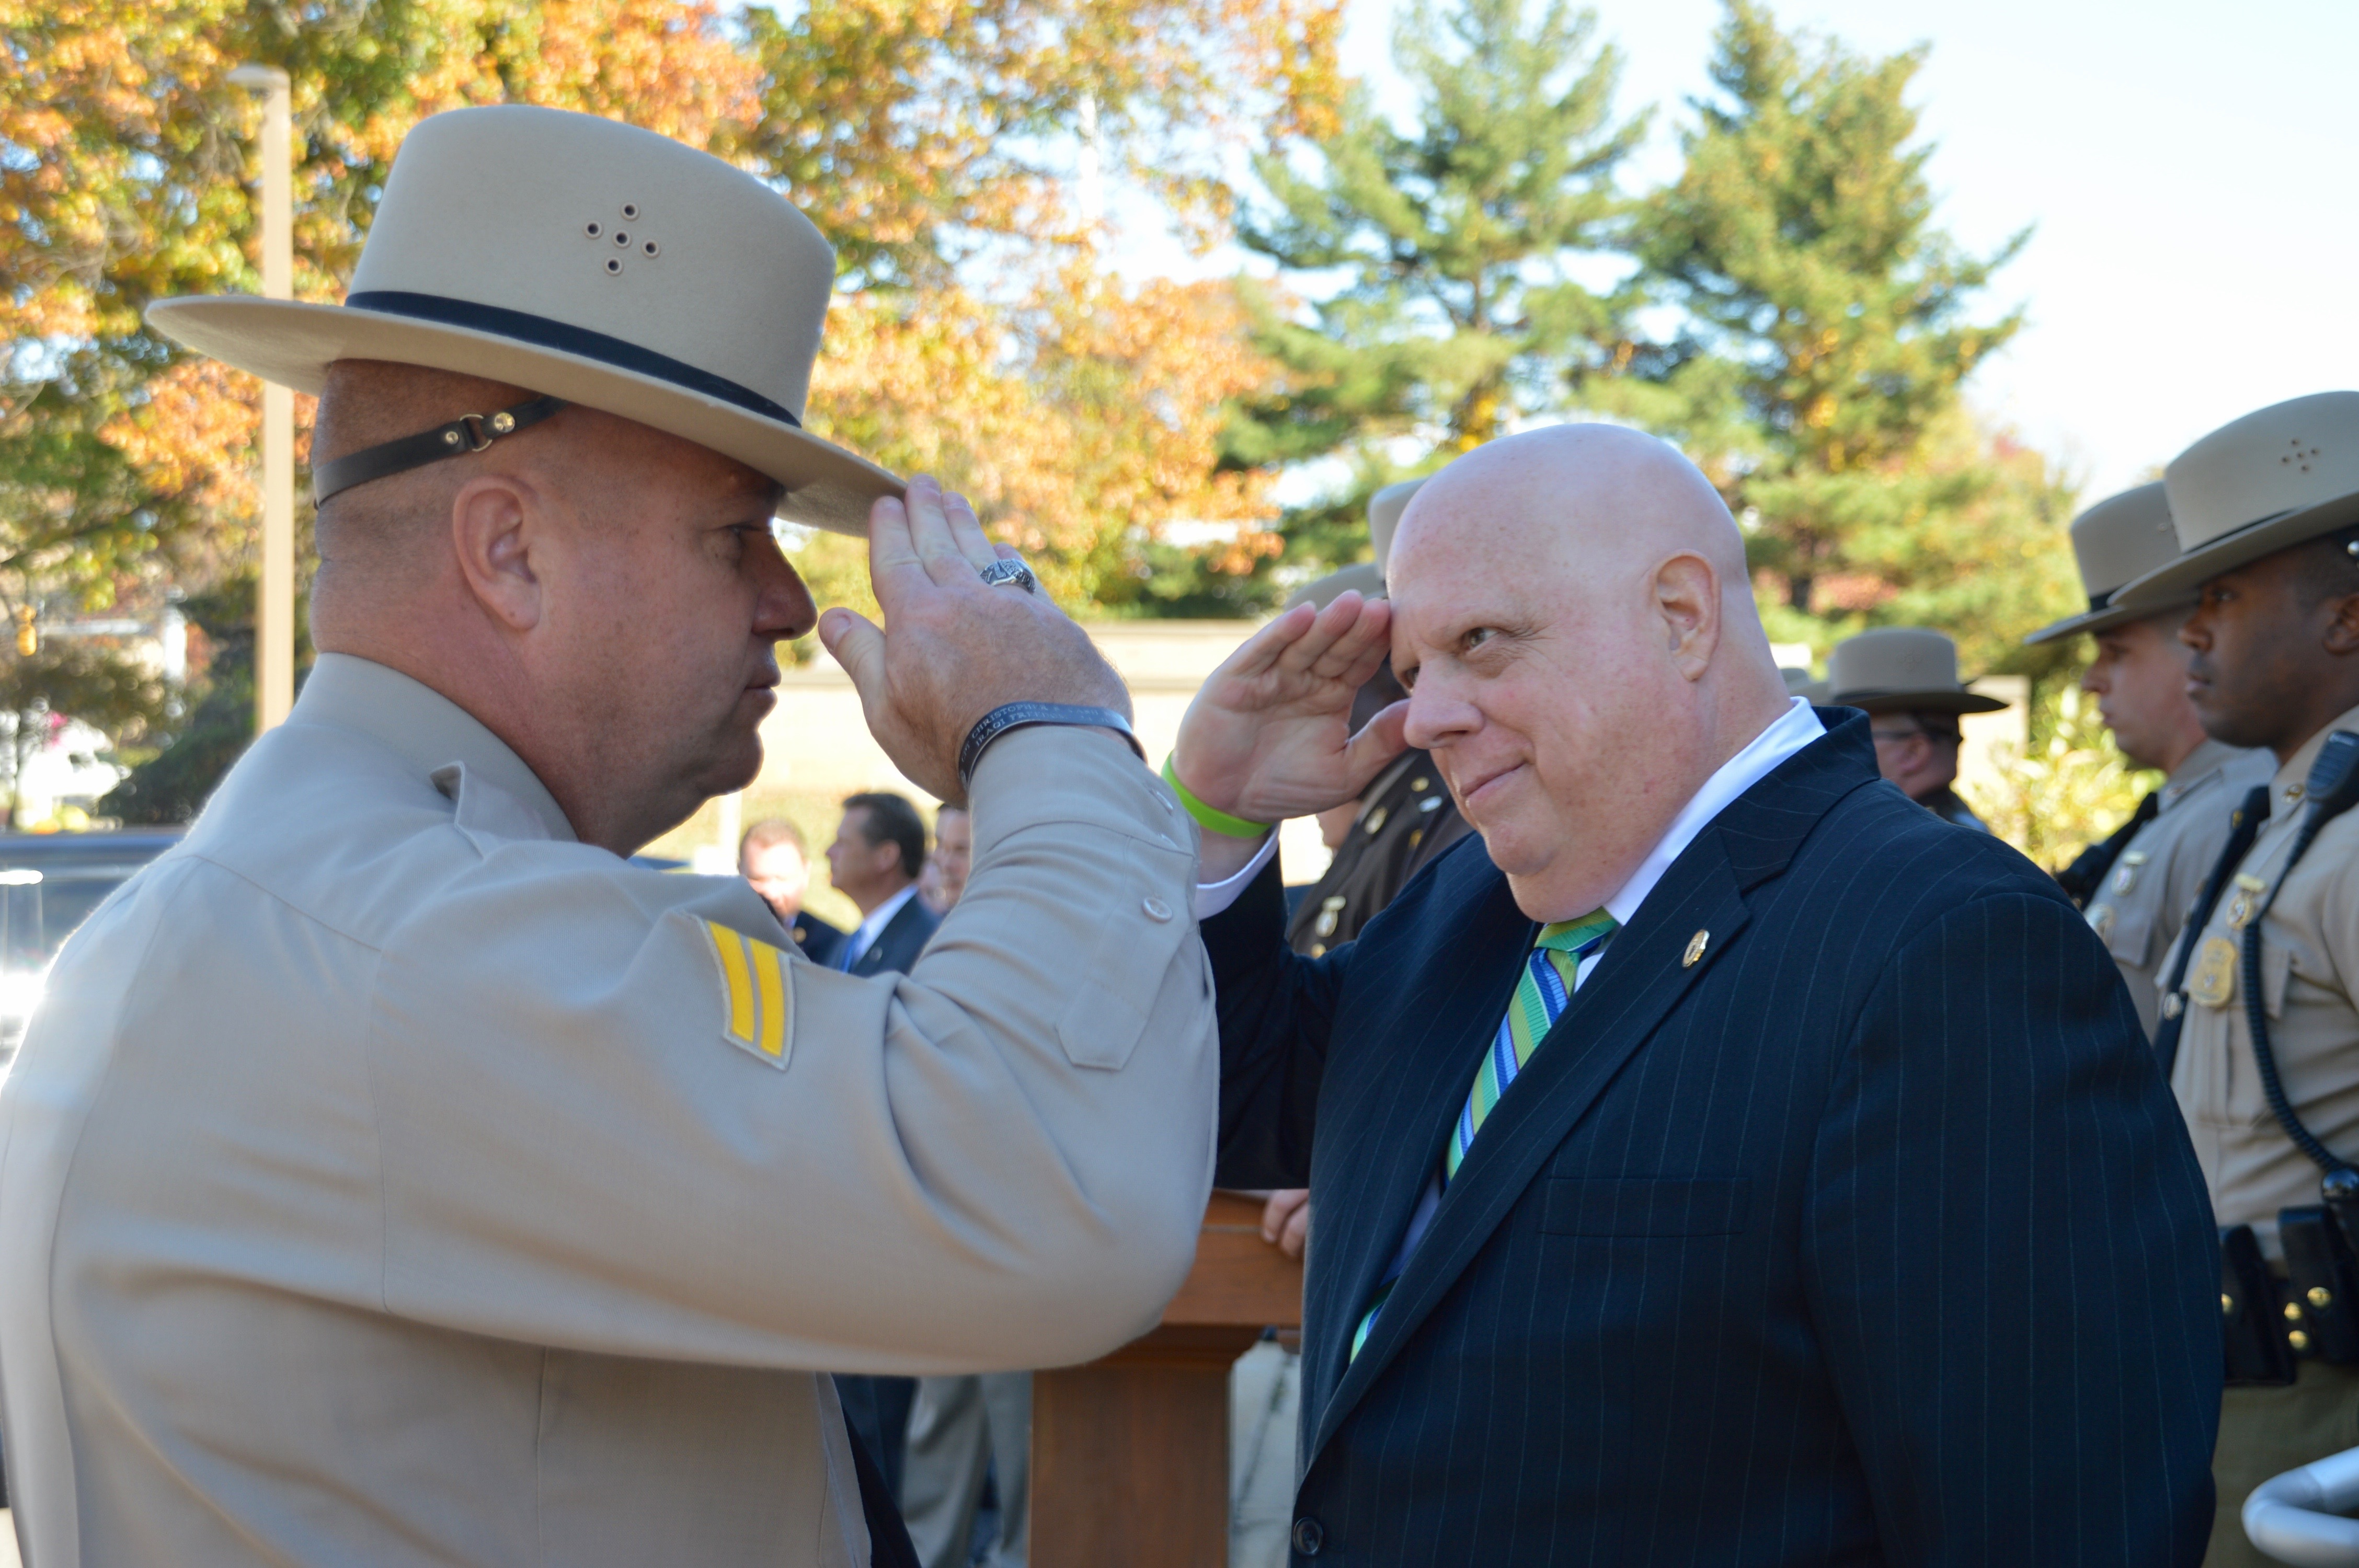 One year after election, Hogan focusing on keeping campaign promises